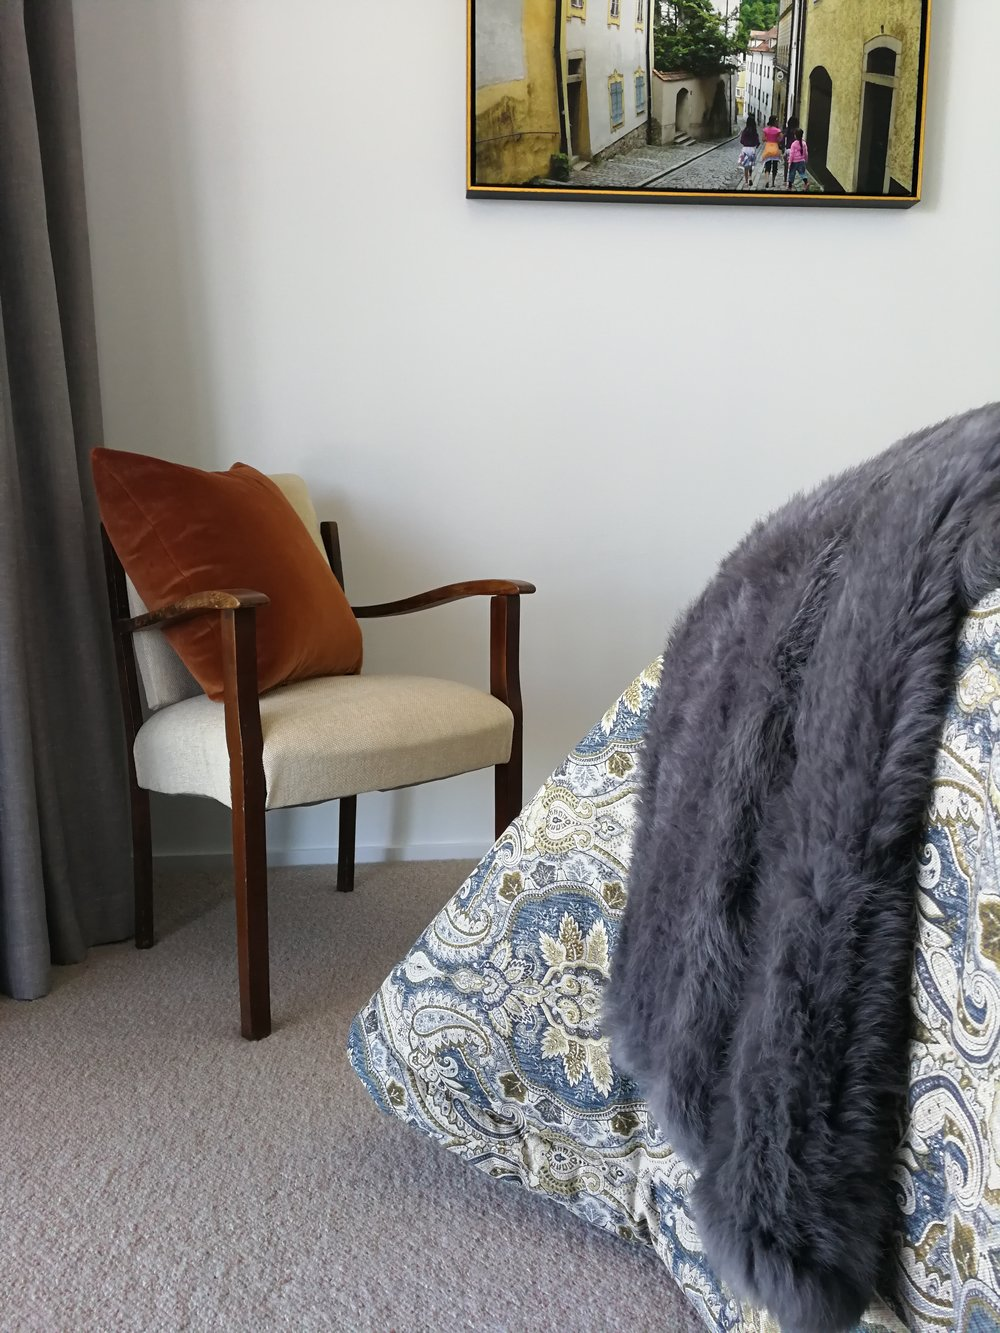 French linen bedspread with rabbit fur throw sits well with a vintage reclining chair.